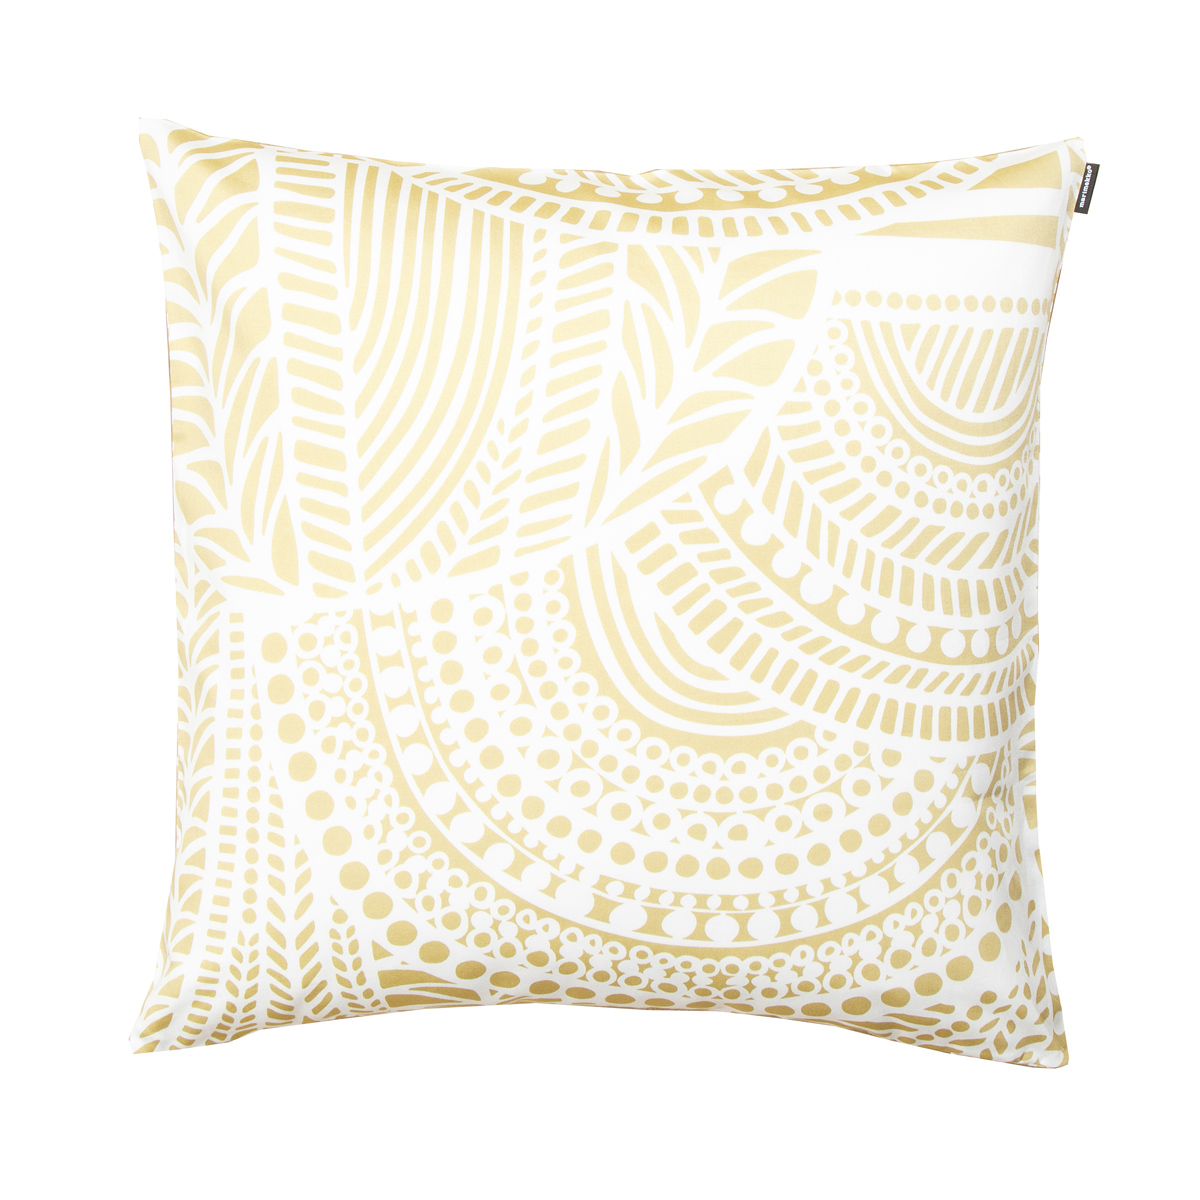 Throw Pillow White : Marimekko Vuorilaakso White / Gold Throw Pillow - Marimekko Fabric & Throw Pillow Sale